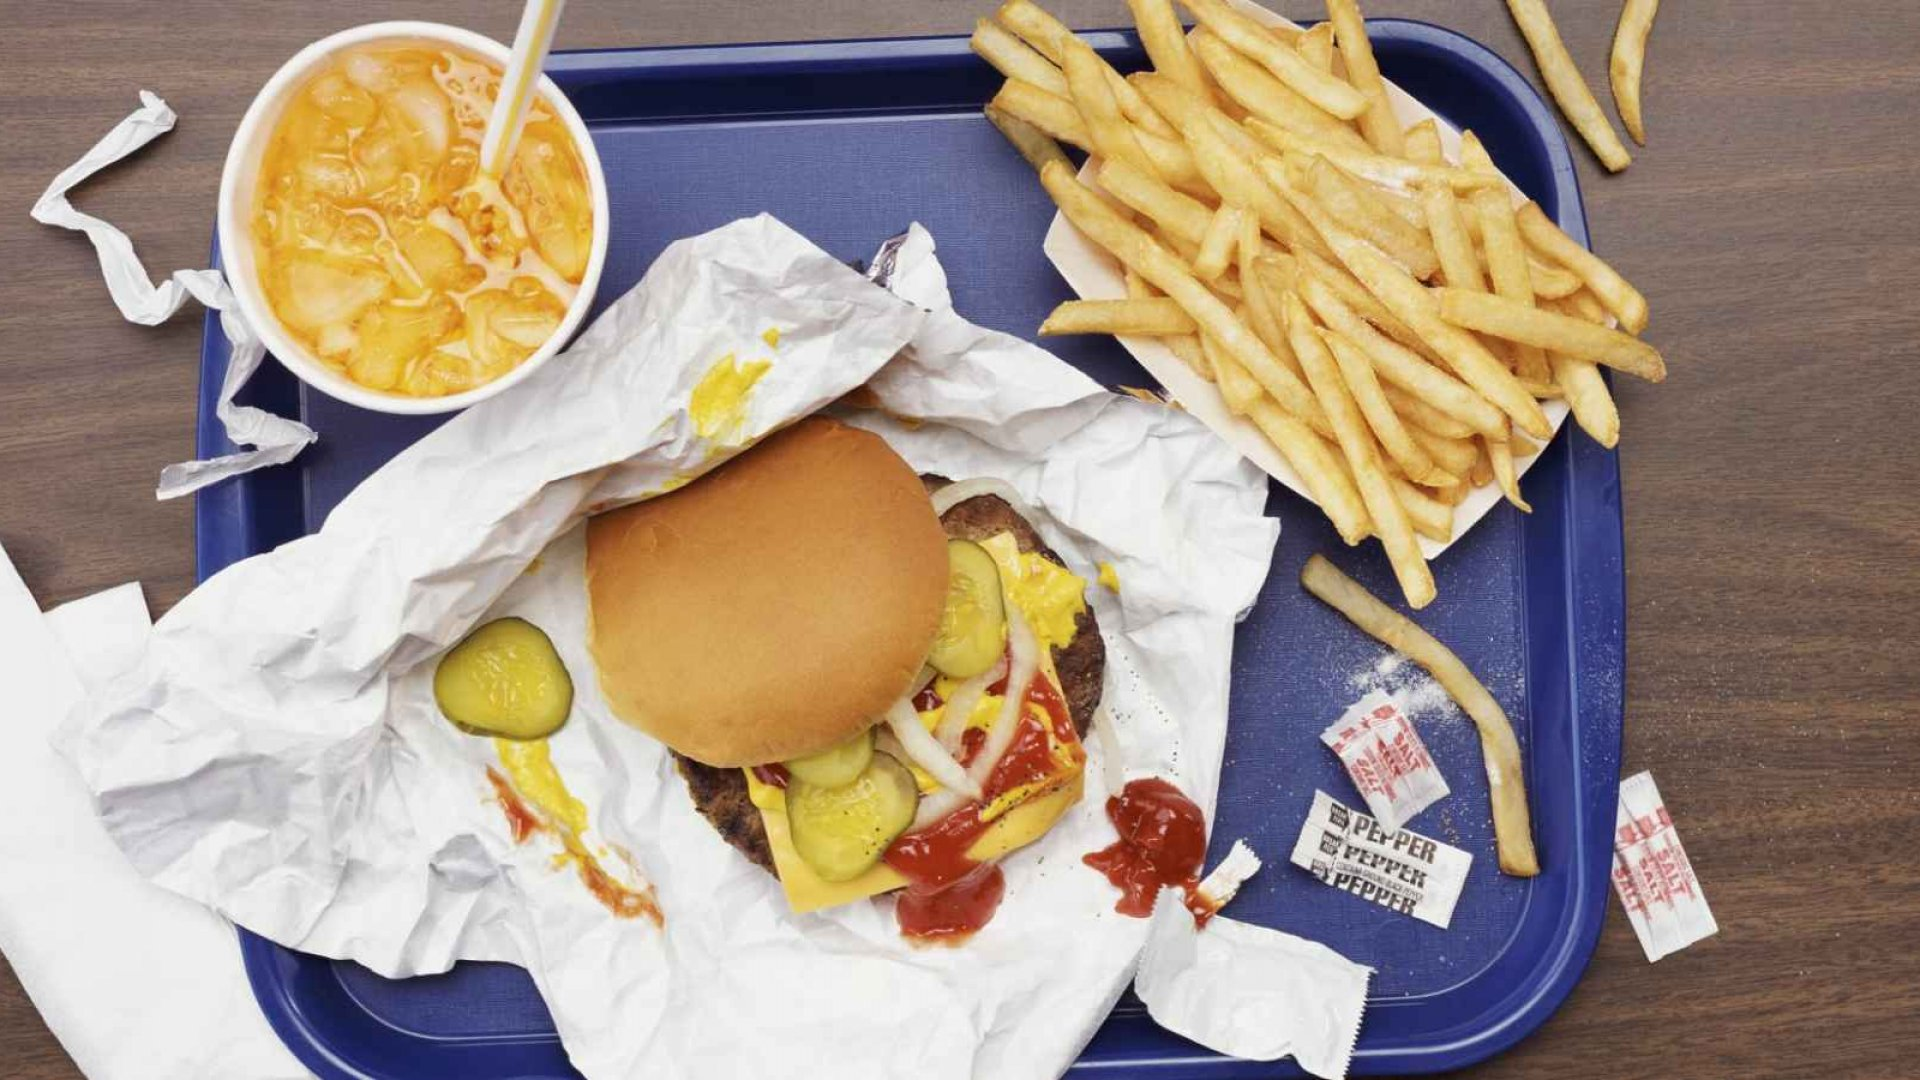 Psychology To Go: How Restaurants Get You to Spend More